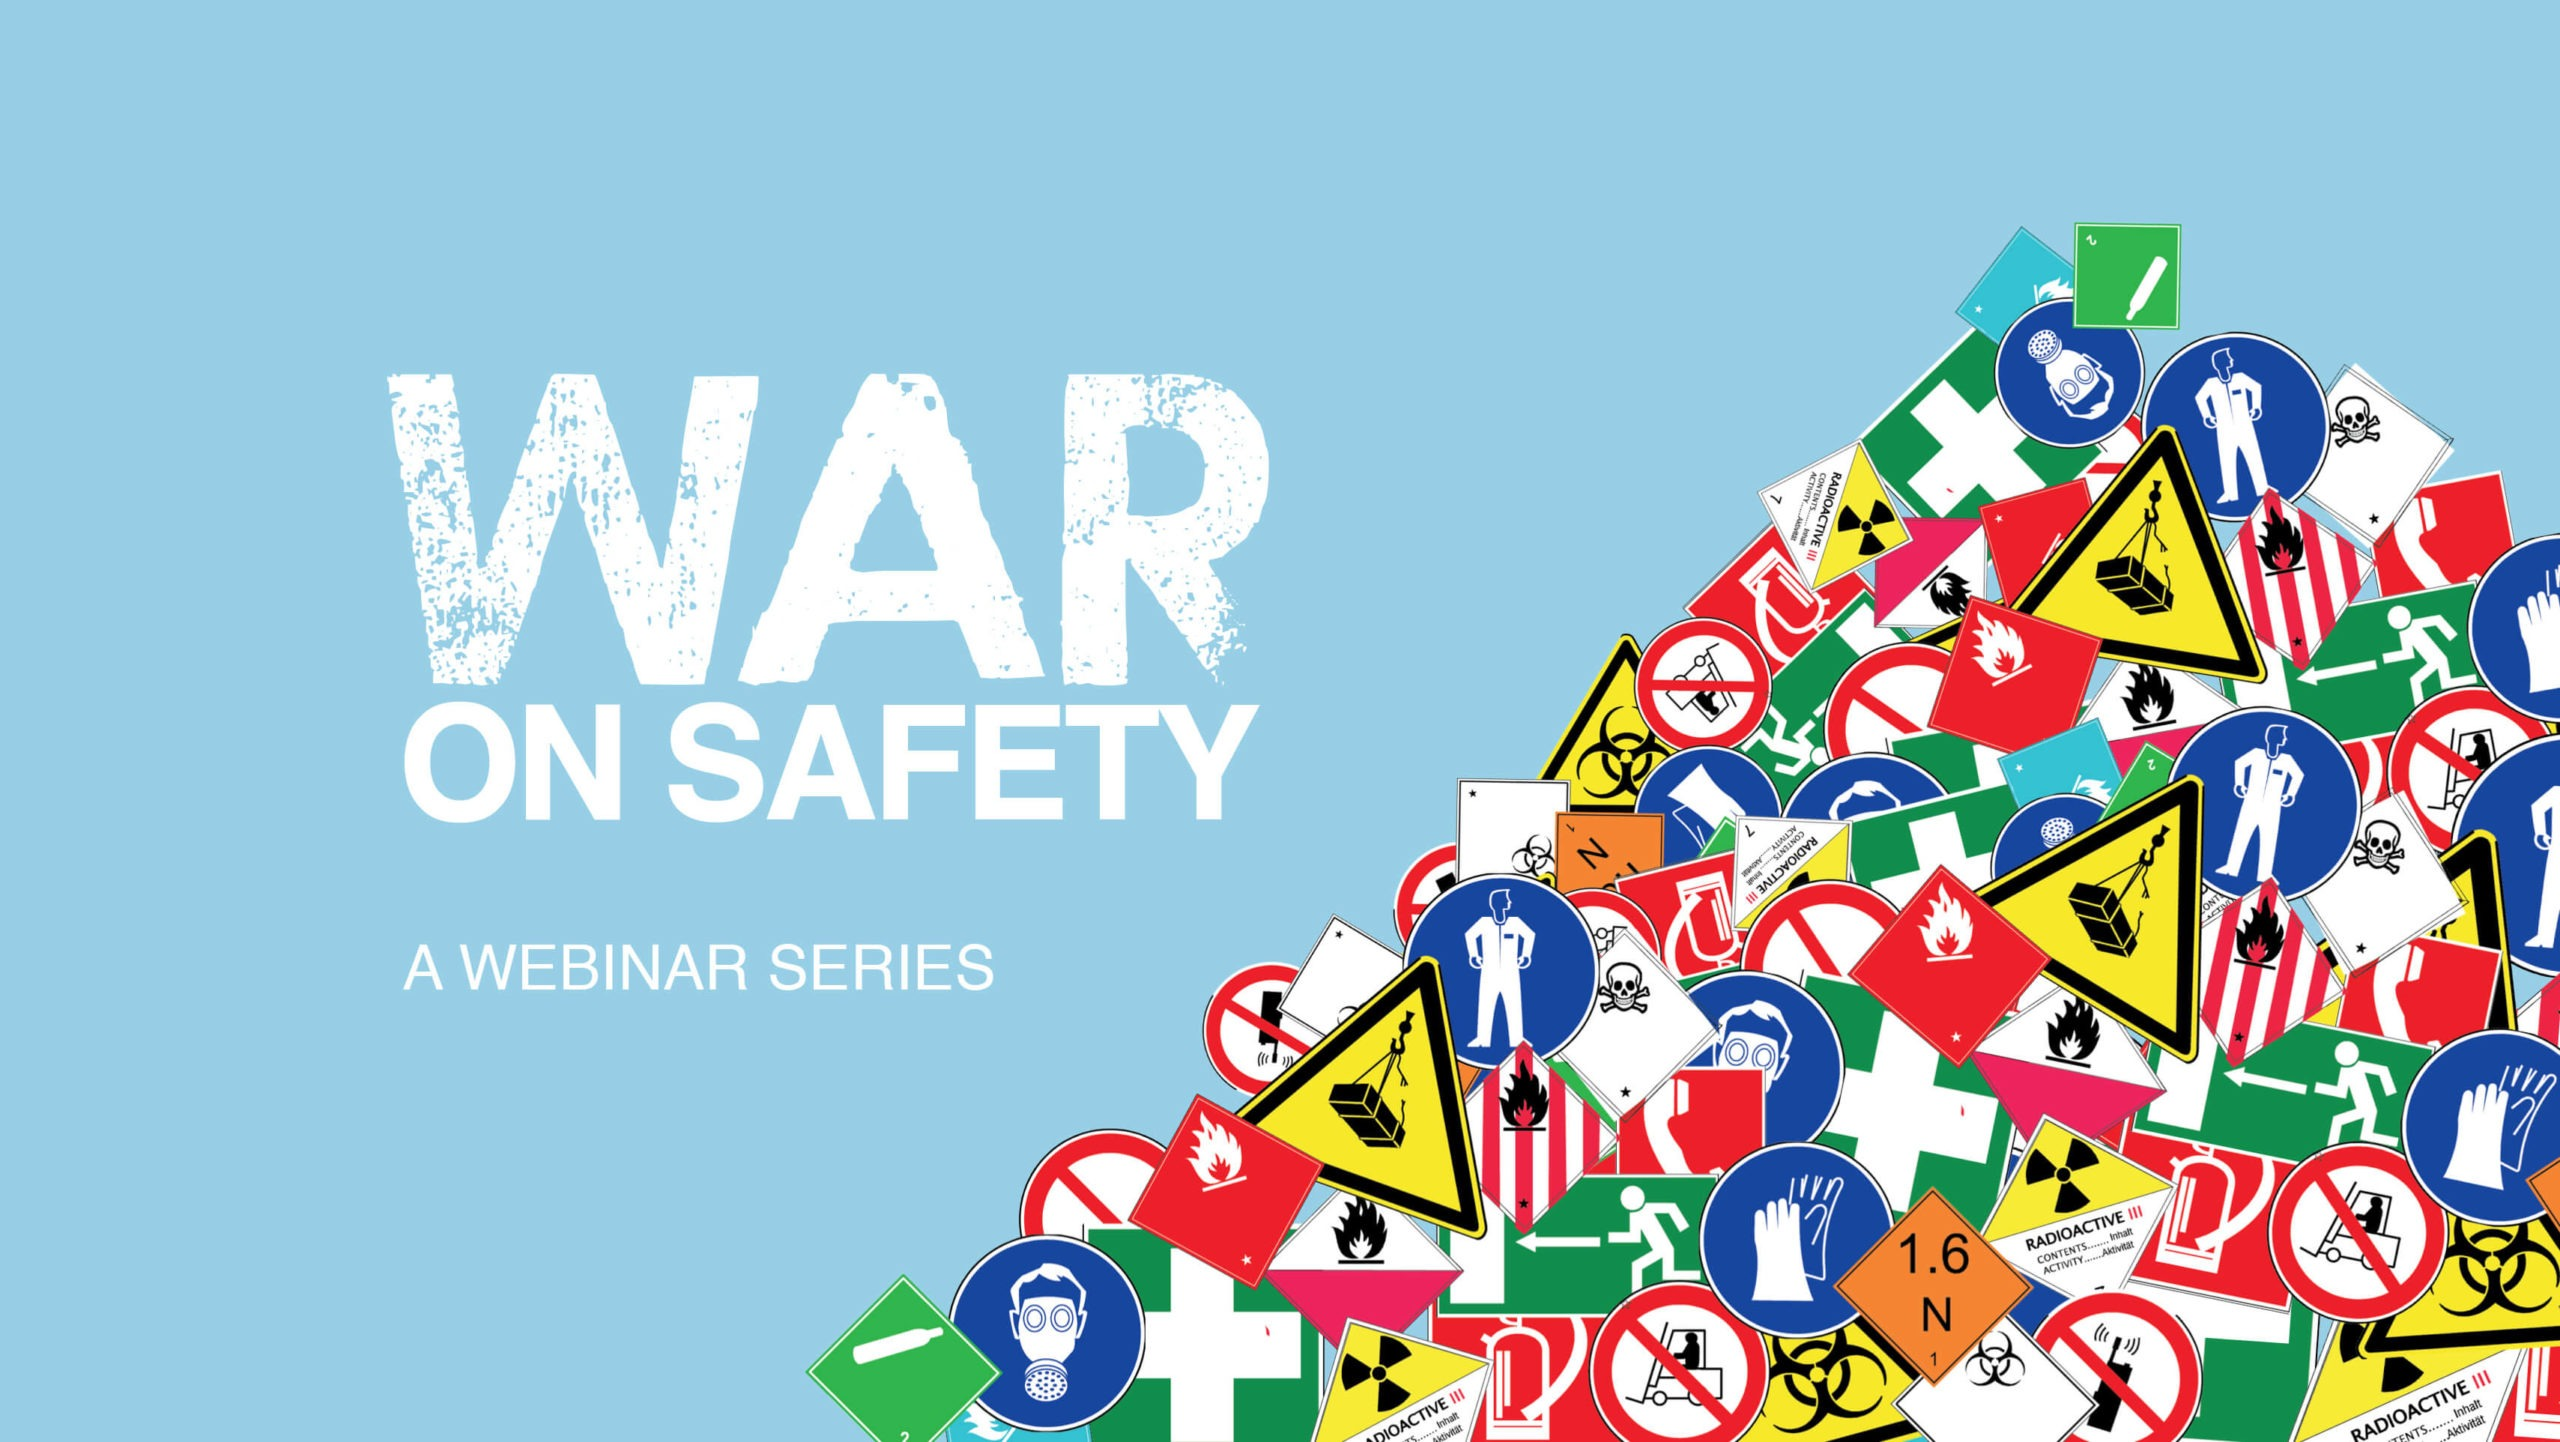 war on waste War on Safety Webinar Promo